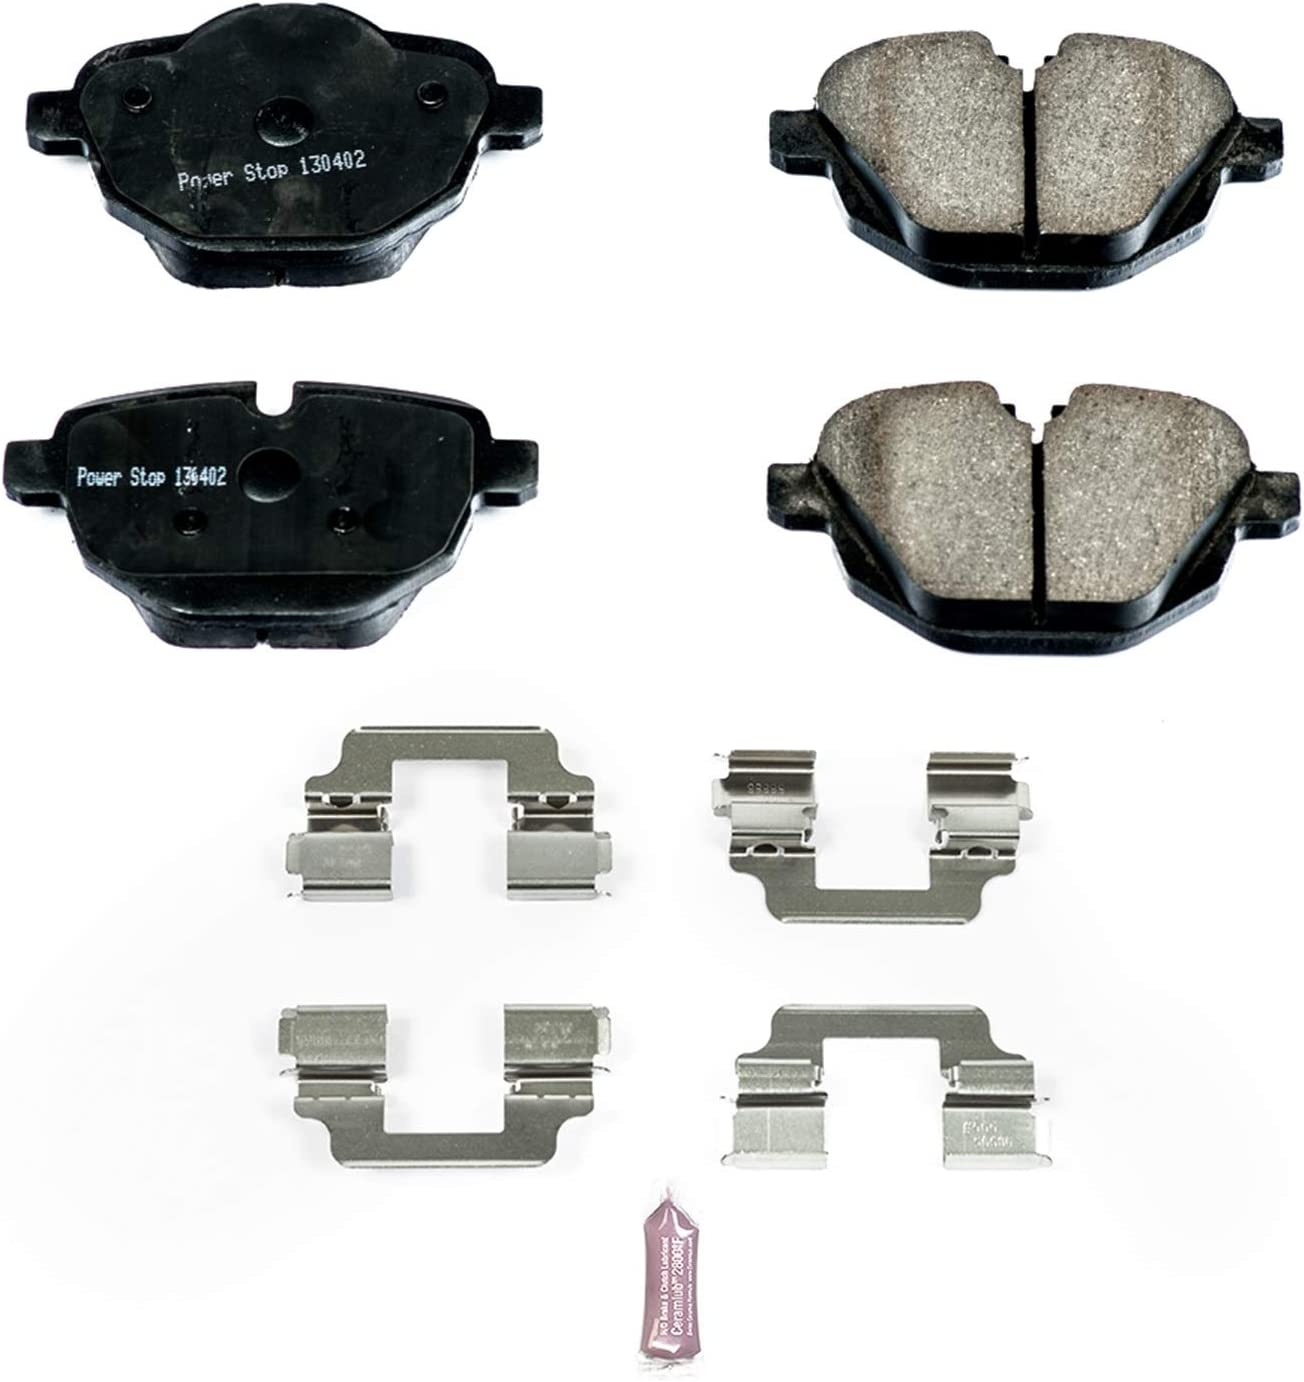 Power Stop 17-1473 Z17 Rear Ceramic Brake Pads with Hardware